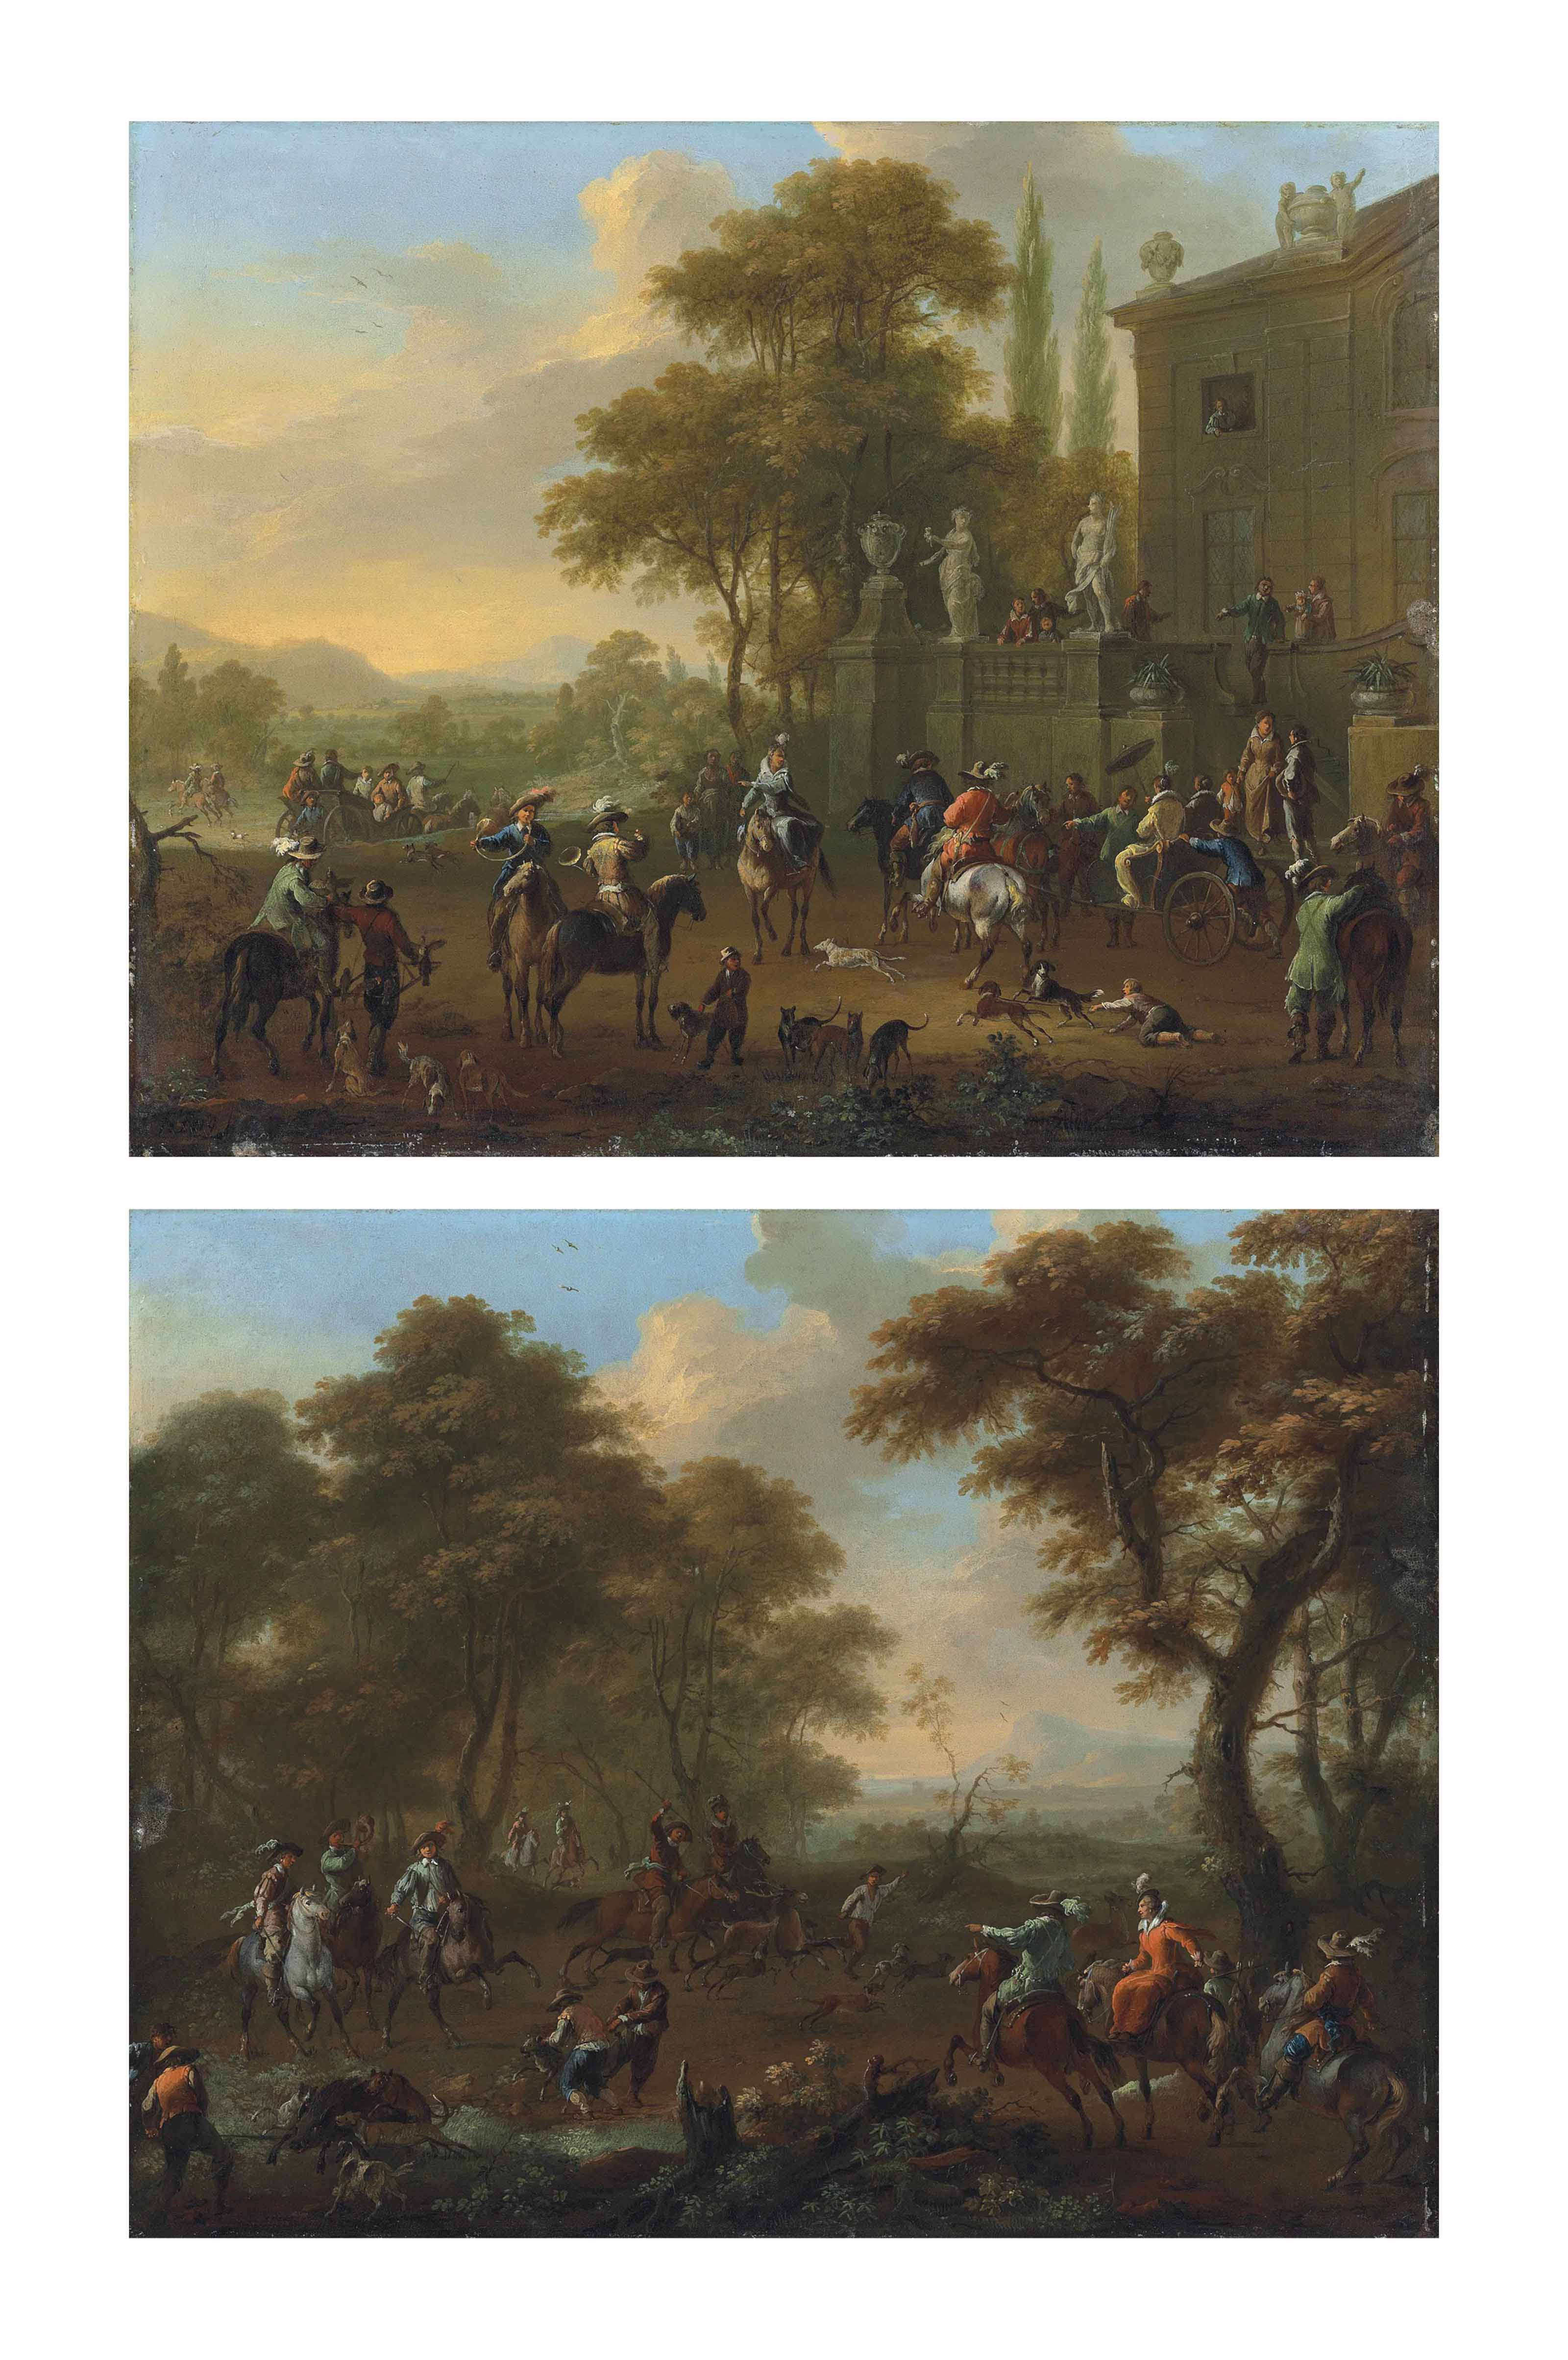 An elegant party at a country house, preparing to set out for the hunt; and An elegant hunting party capturing a stag and boar